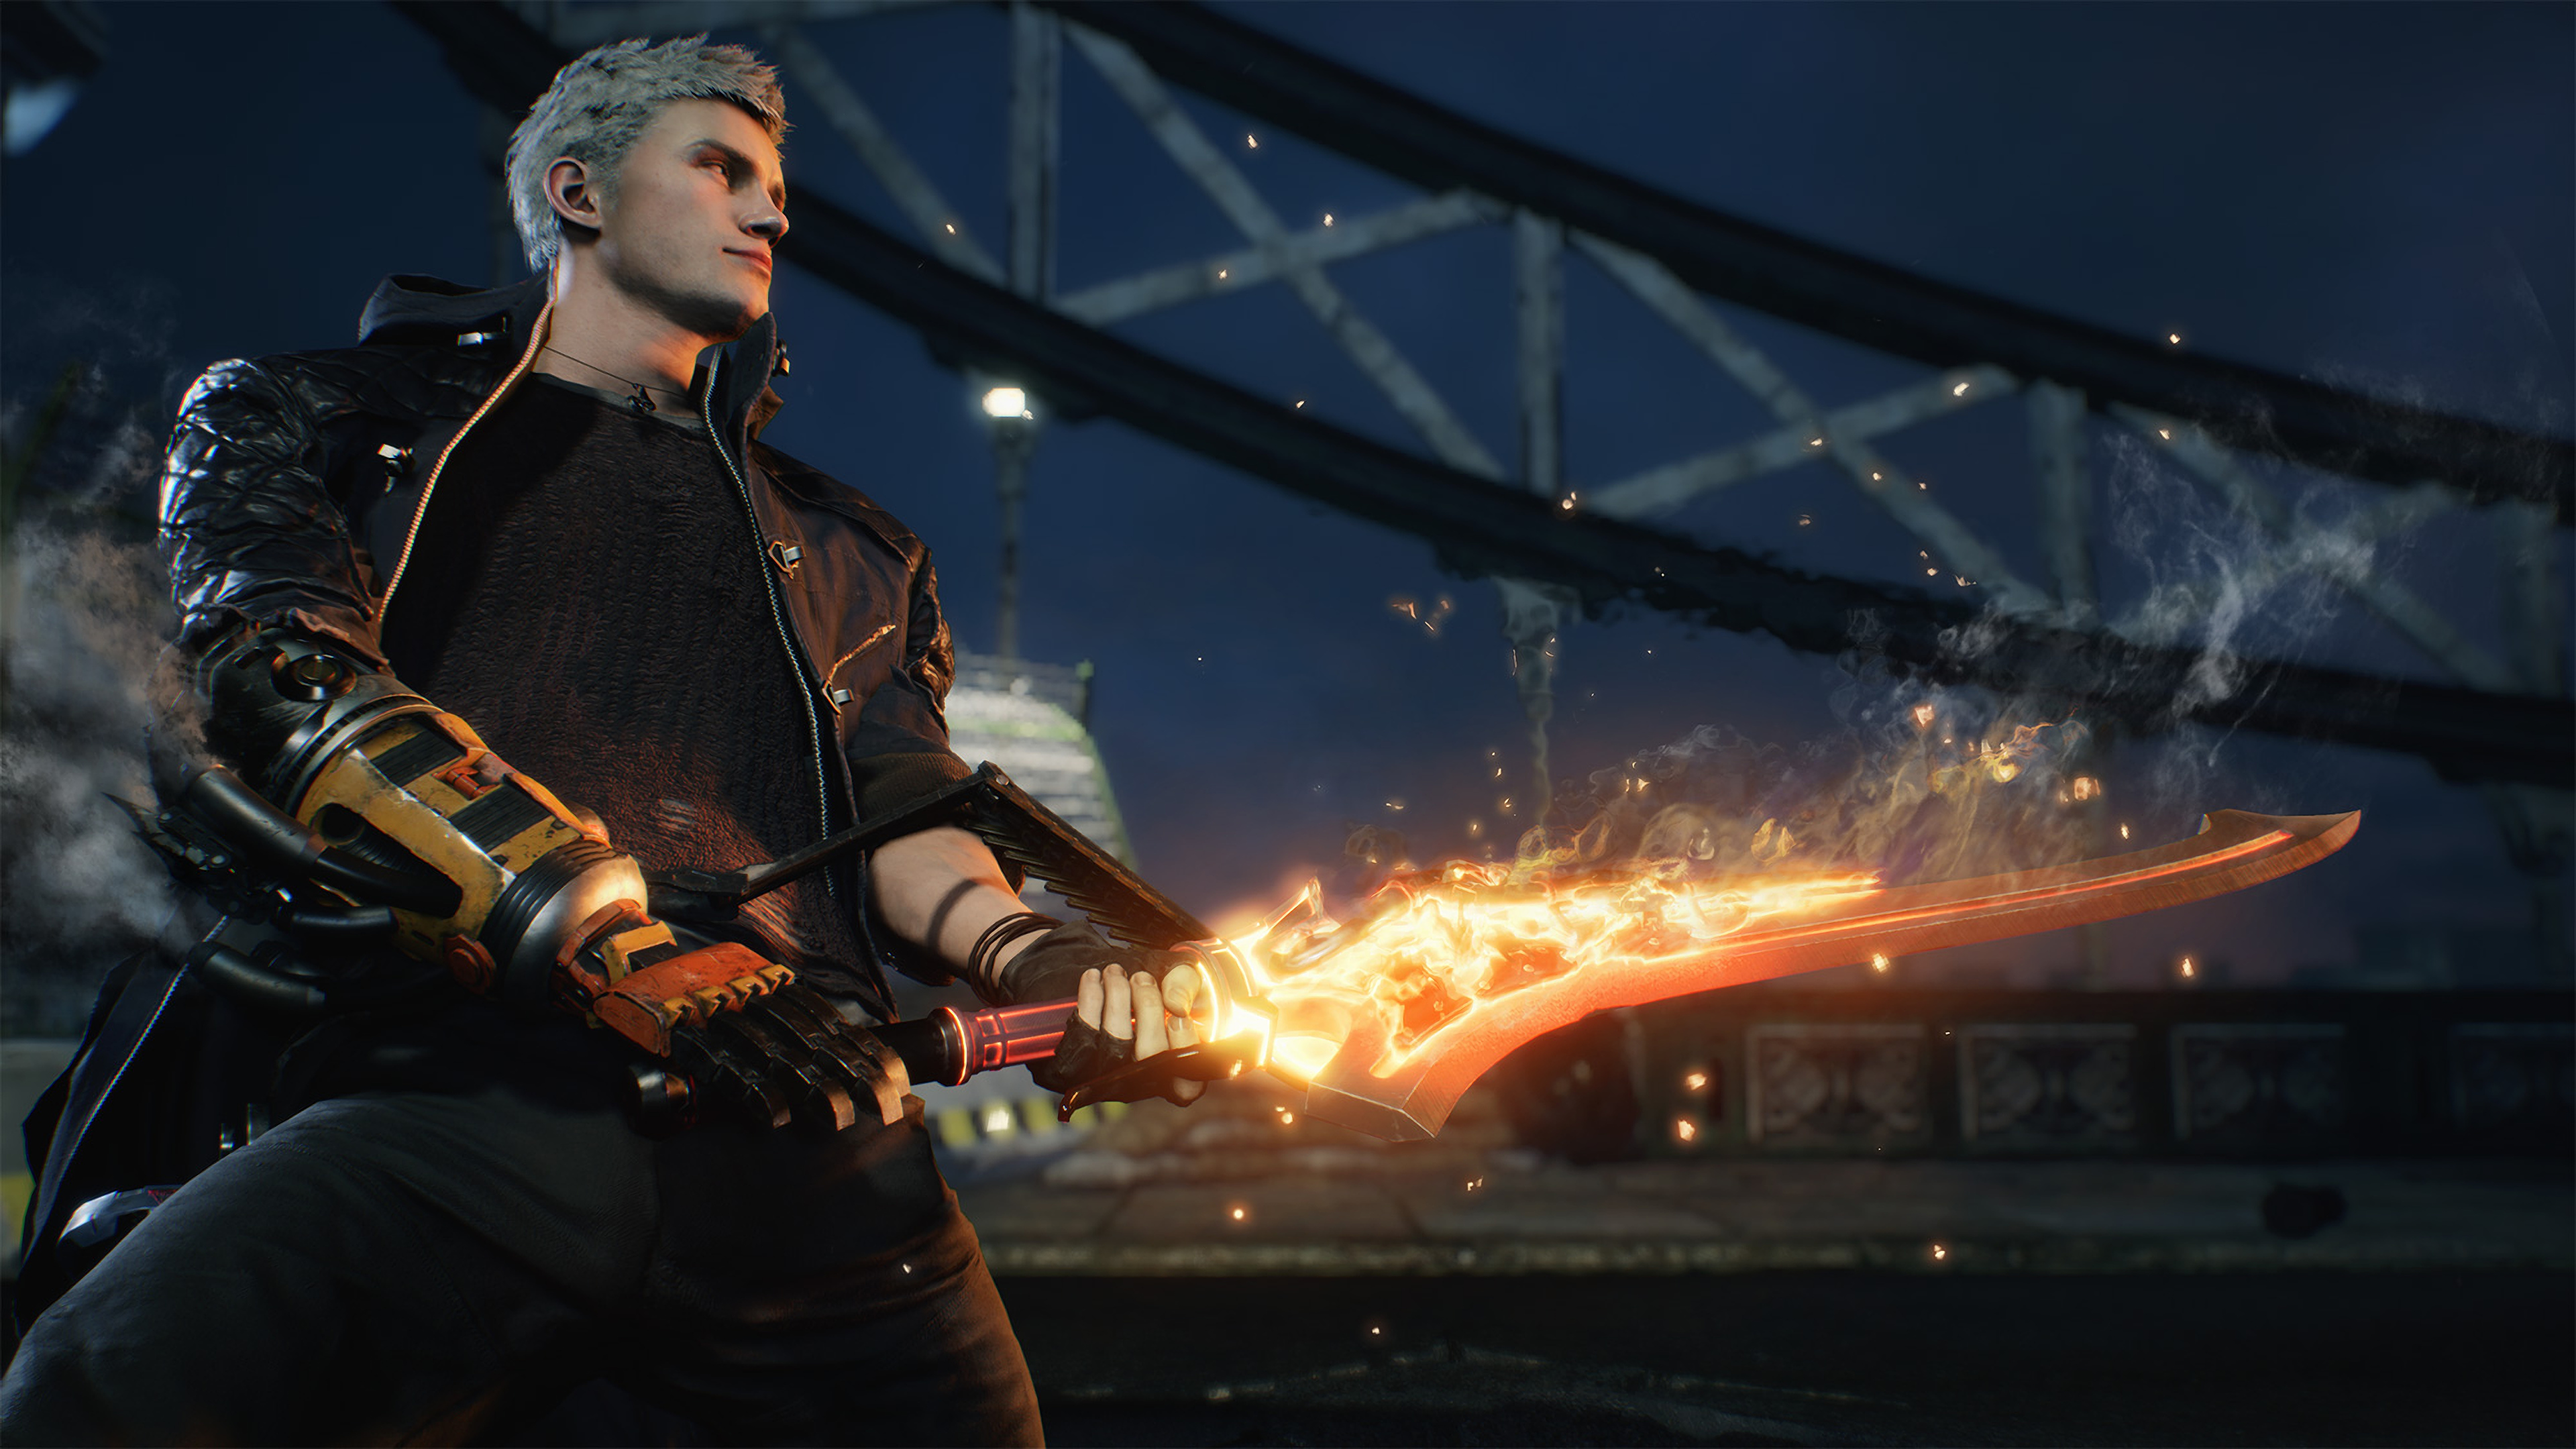 Devil May Cry 5 Nero 4k, HD Games, 4k Wallpapers, Images